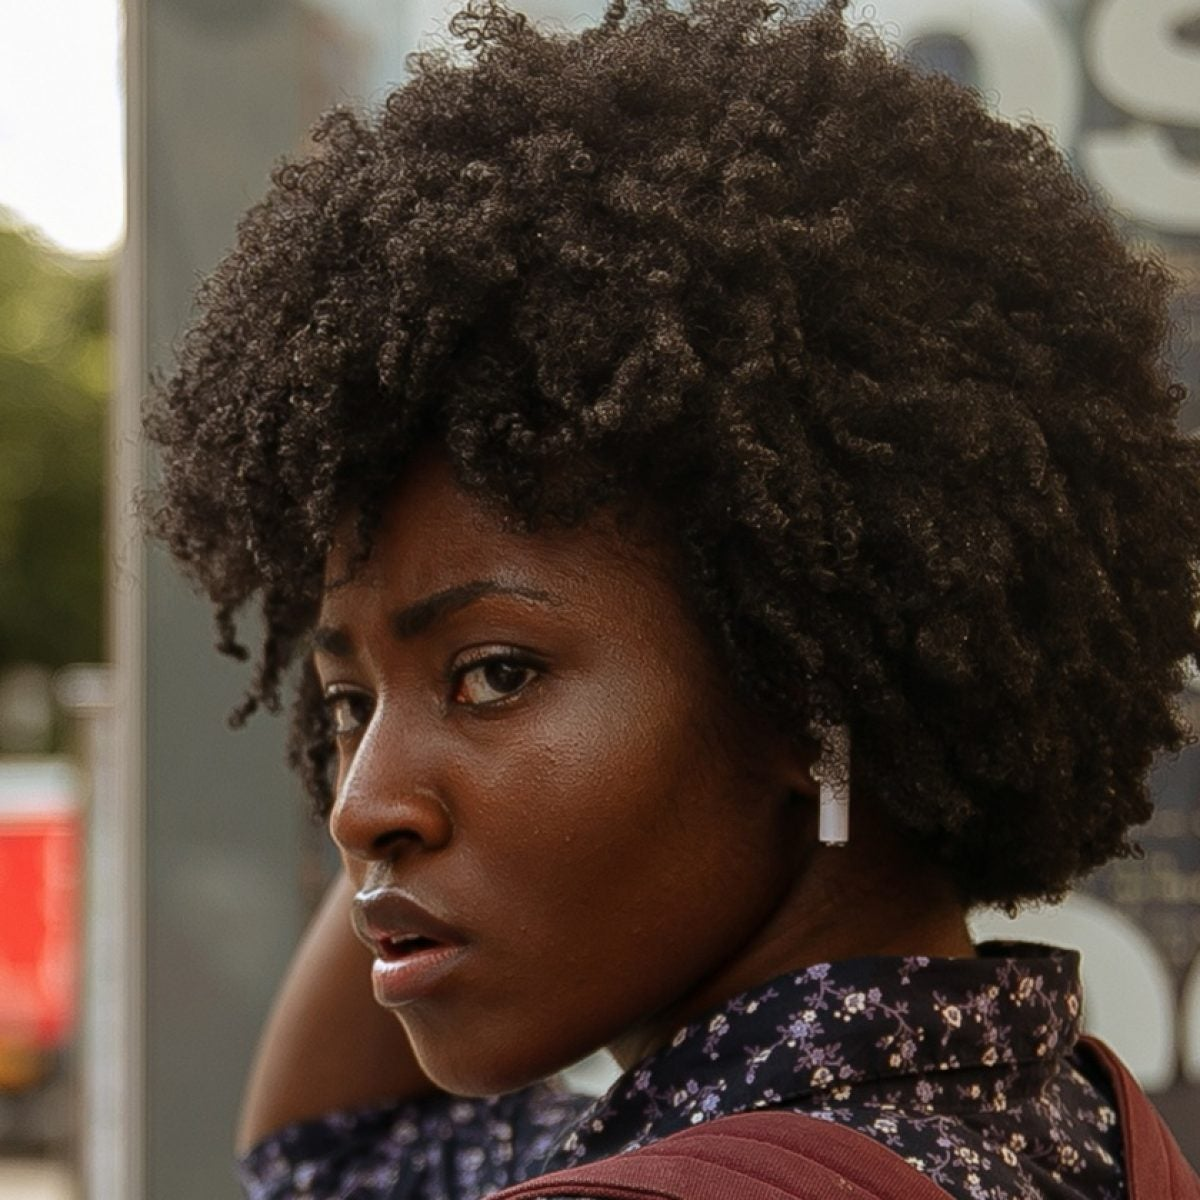 'Farewell Amor' Is A Moving Tale Of An African Immigrant Family Reconnecting After Years Of Separation